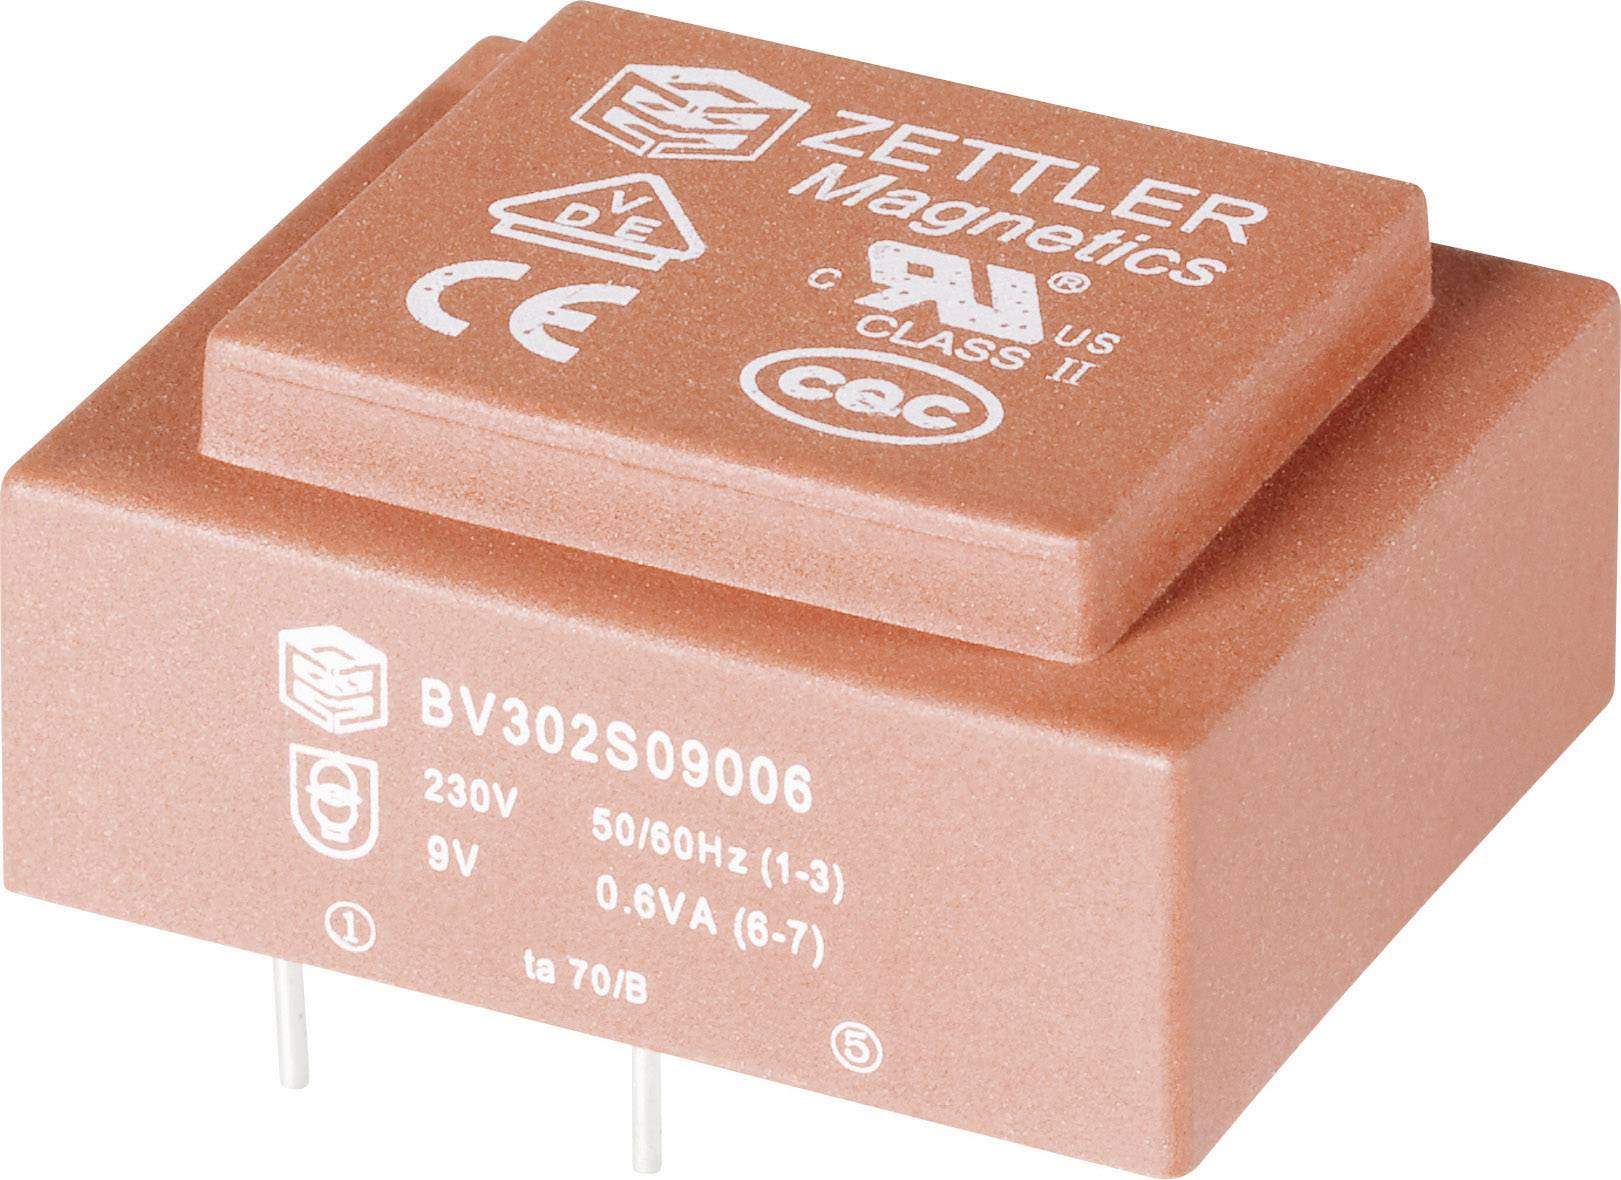 Transformátor do DPS Zettler Magnetics El30, 230 V/15 V, 40 mA, 1,5 VA